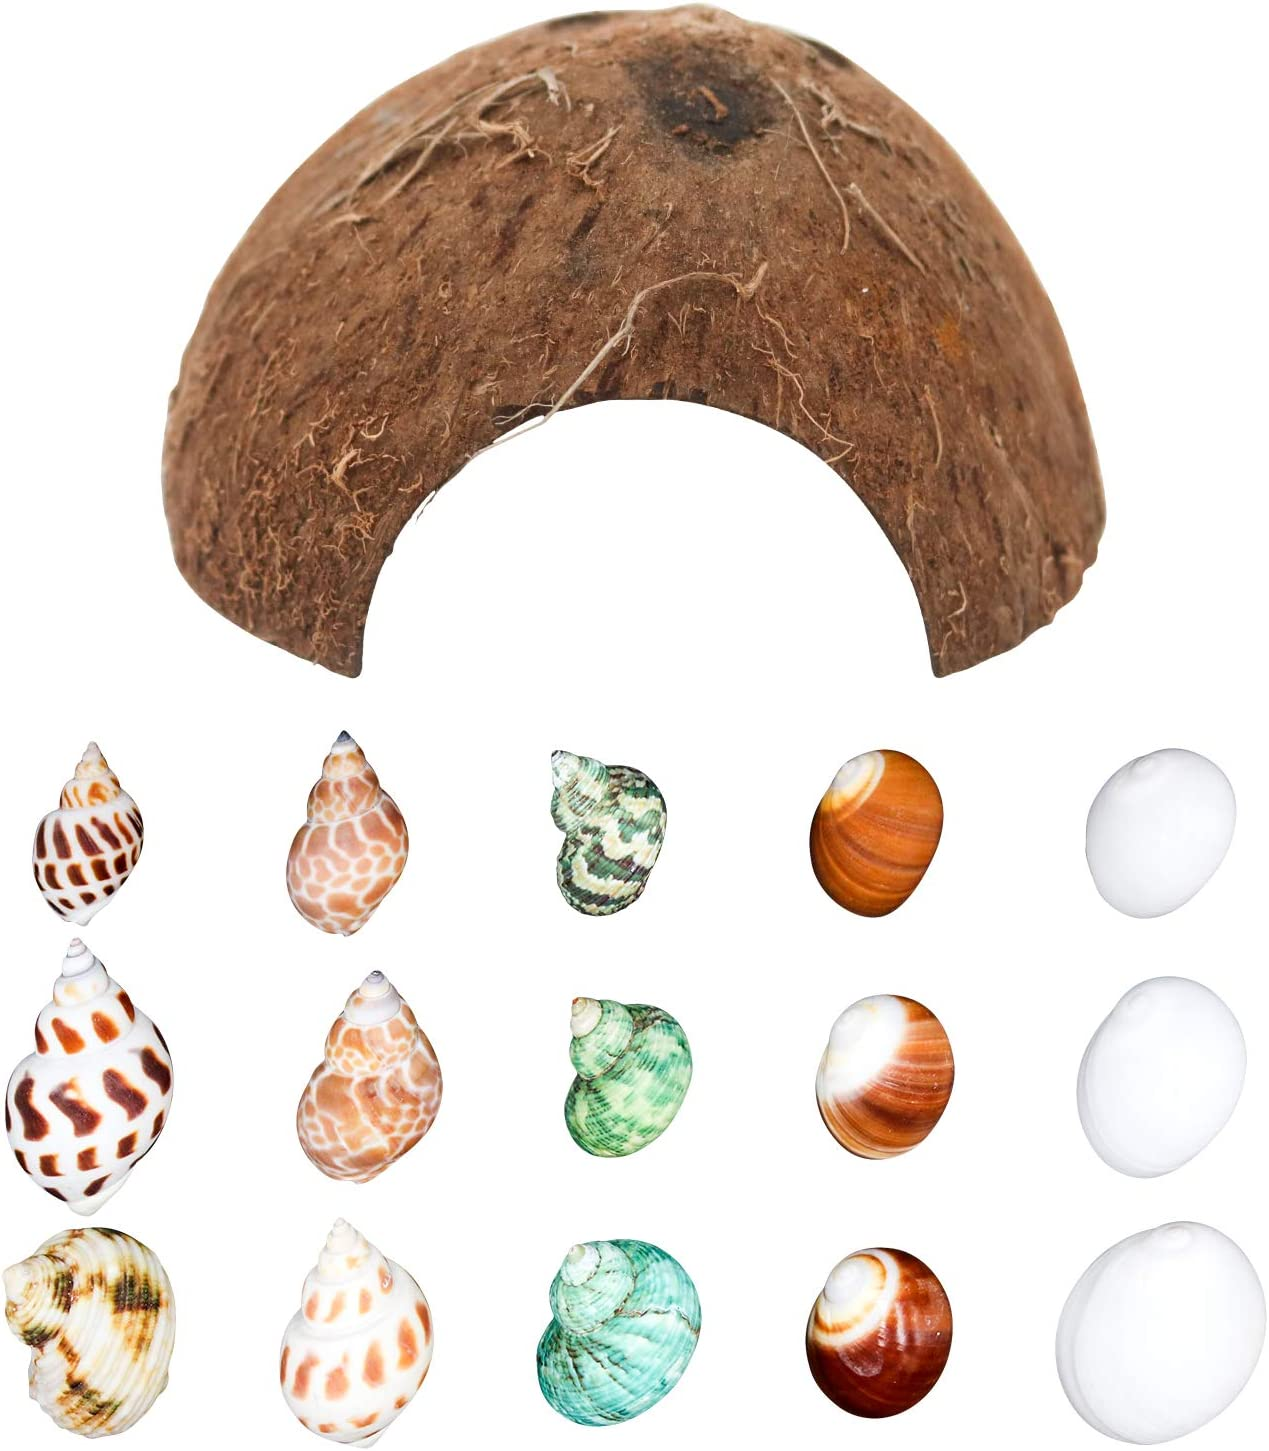 "Hermit Crab Shells/Turbo Shells/15Pcs Assorted Turbo Shells and 1Pcs Natural Coconut Hide Reptile Hideout/Seashell Opening Size 0.78""-1.57""-Handpicked Turbo Growth Seashell Natural Sea Conch"